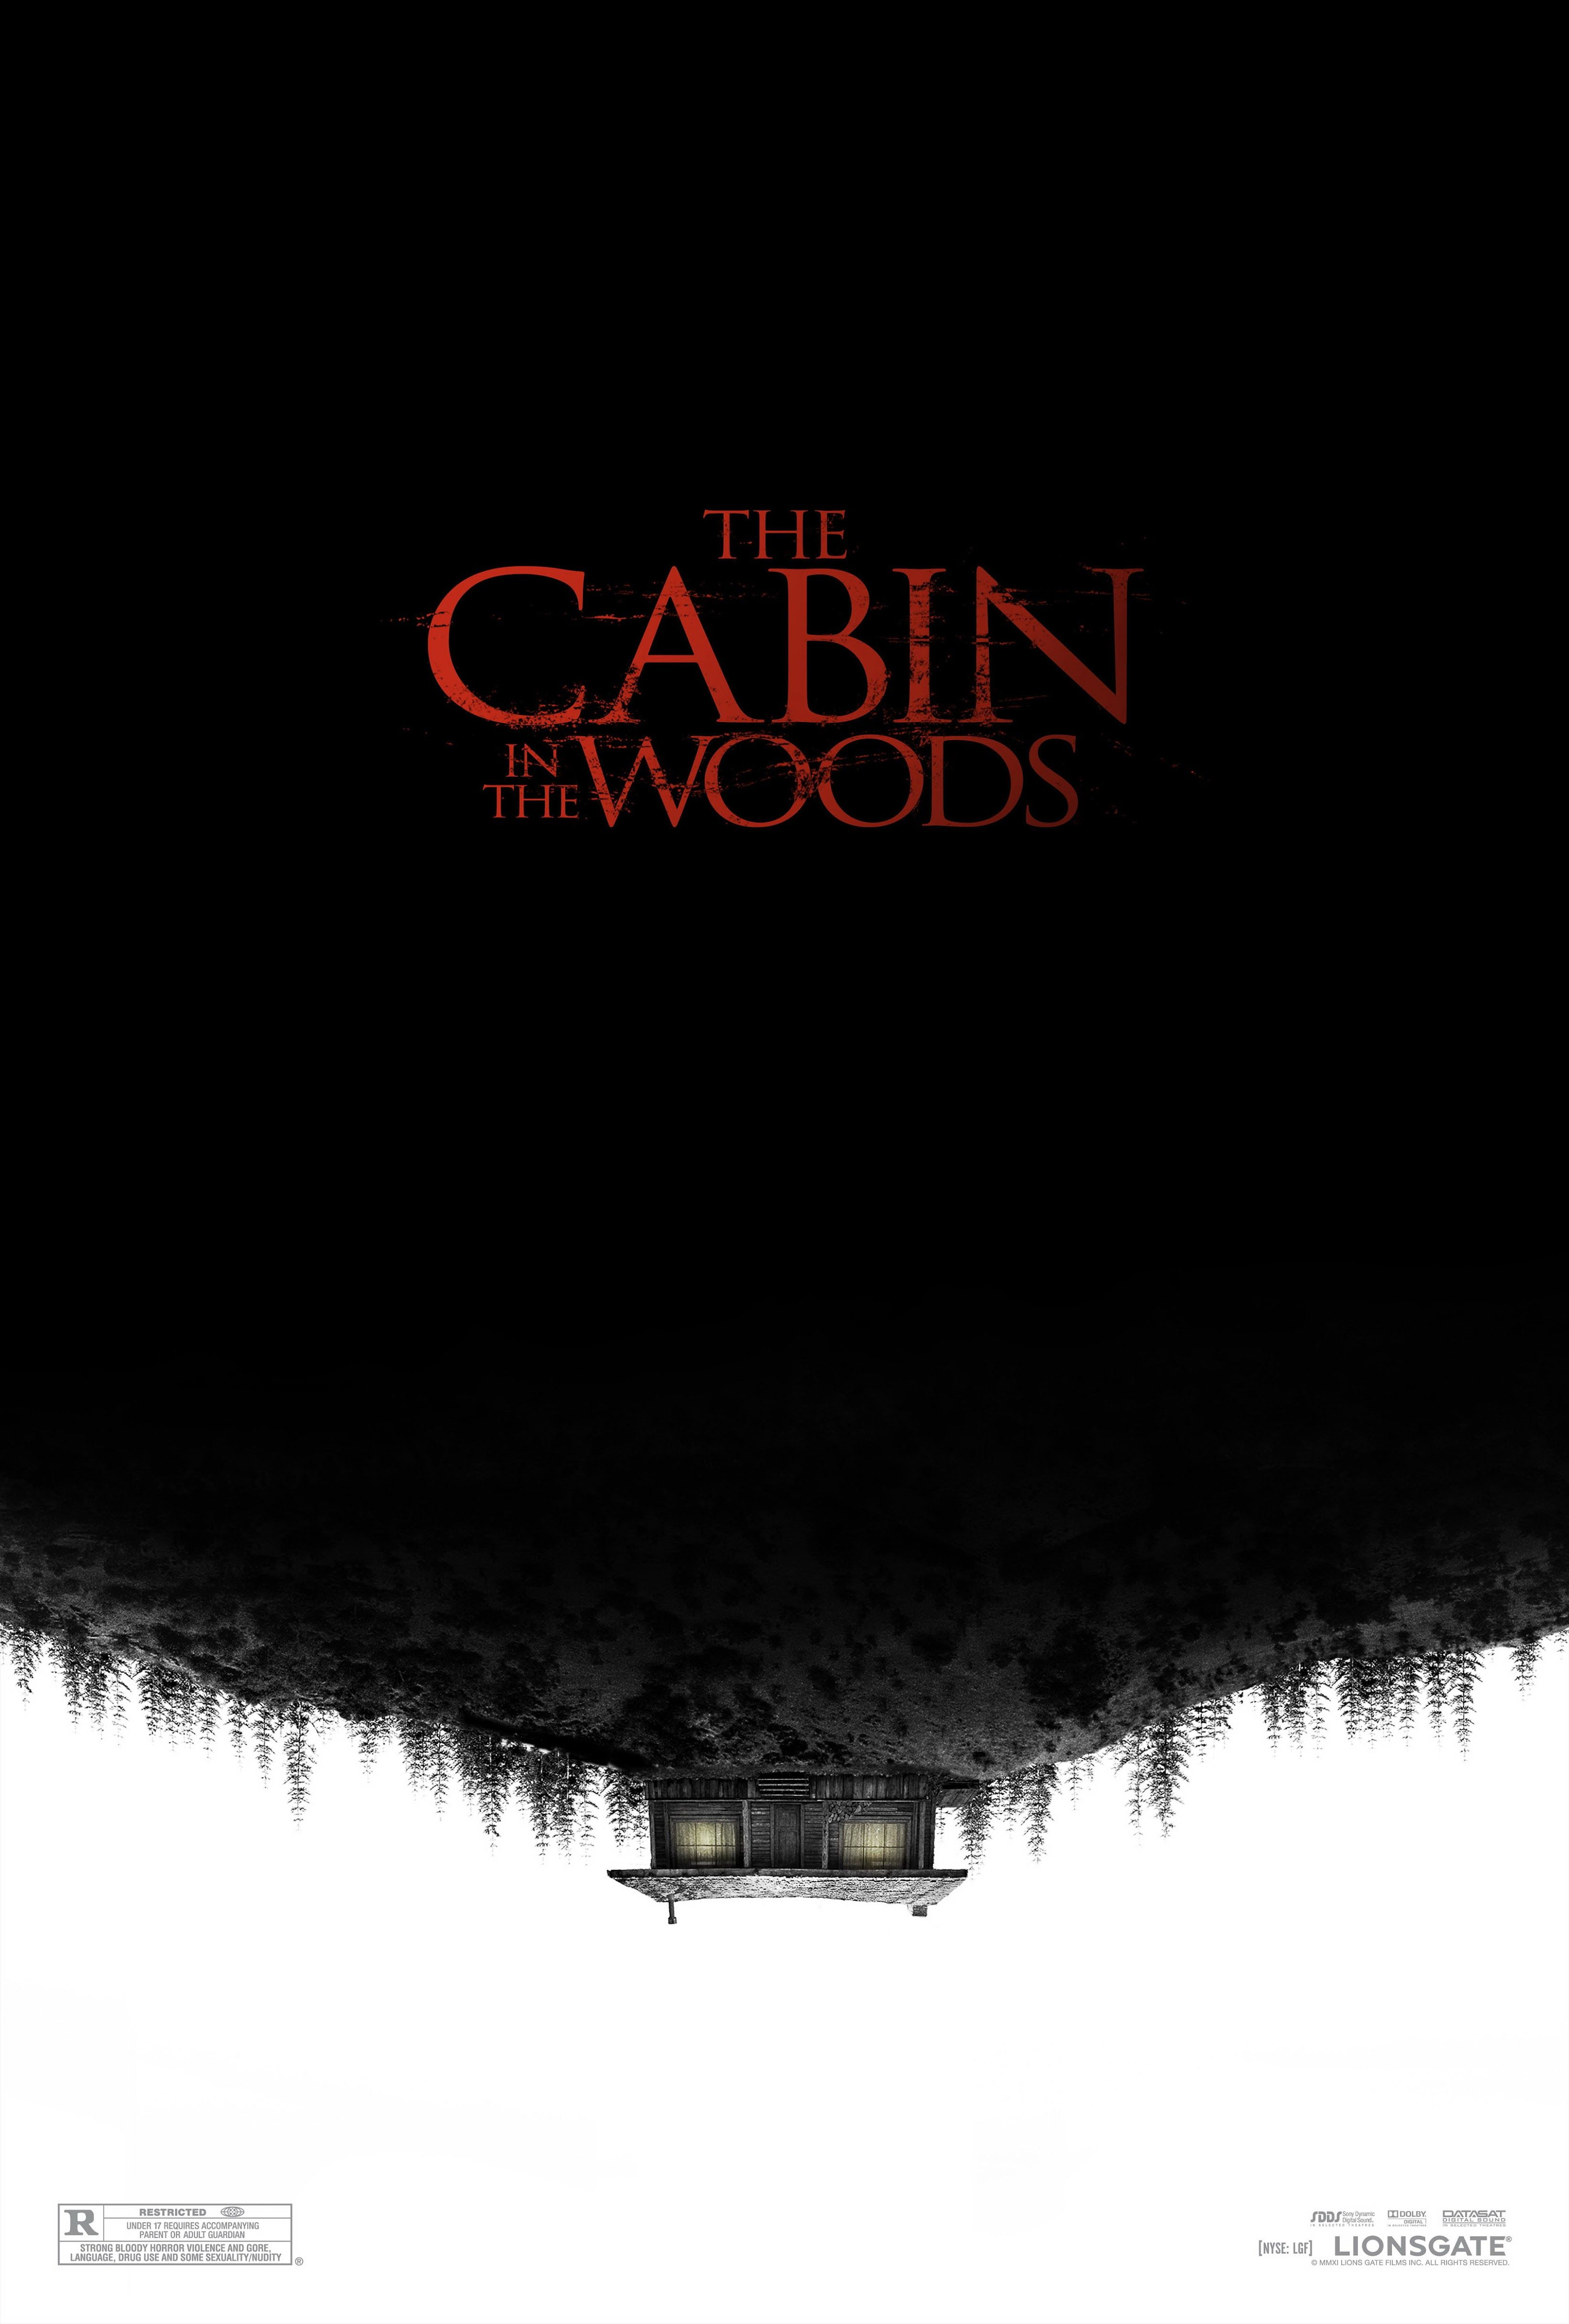 The Cabin in the Woods (2012) | WΛTCHΞD in 2019 | Into the woods